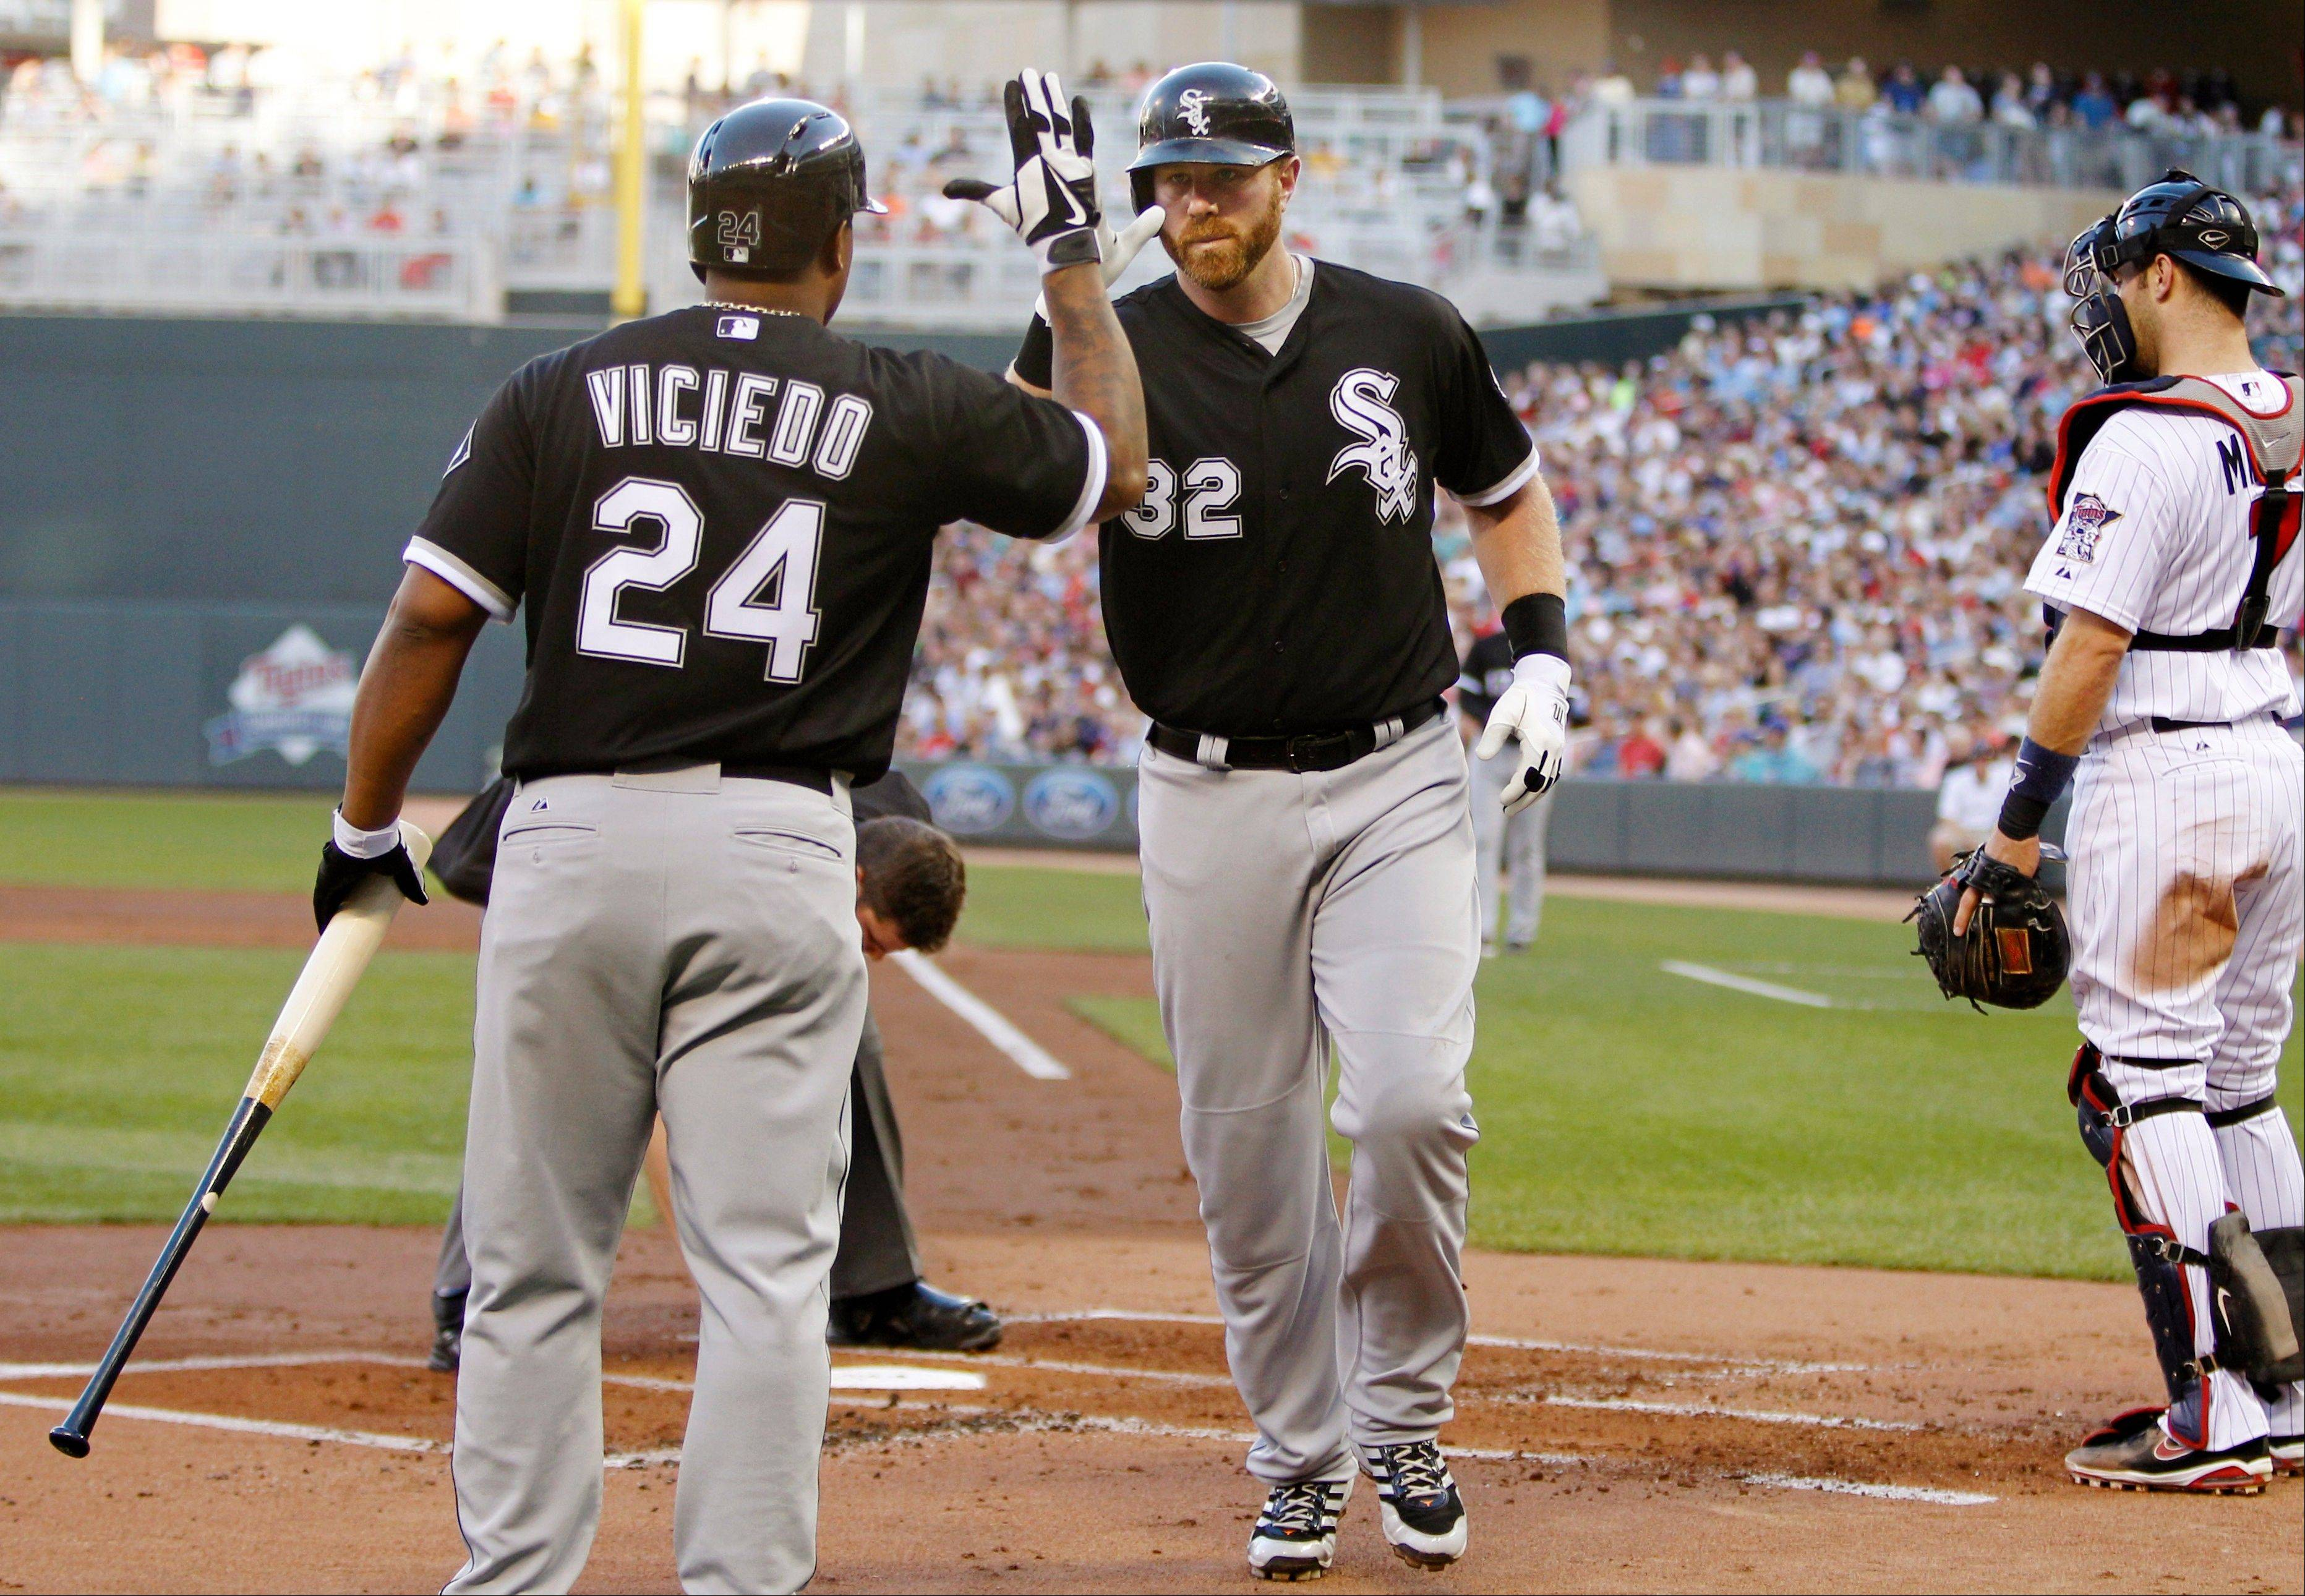 Adam Dunn (32) is congratulated by Dayan Viciedo (24) after hitting a solo home run against Minnesota Twins starting pitcher Kevin Correia during the second inning of a baseball game, Tuesday, May 14, 2013, in Minneapolis. (AP Photo/Genevieve Ross)